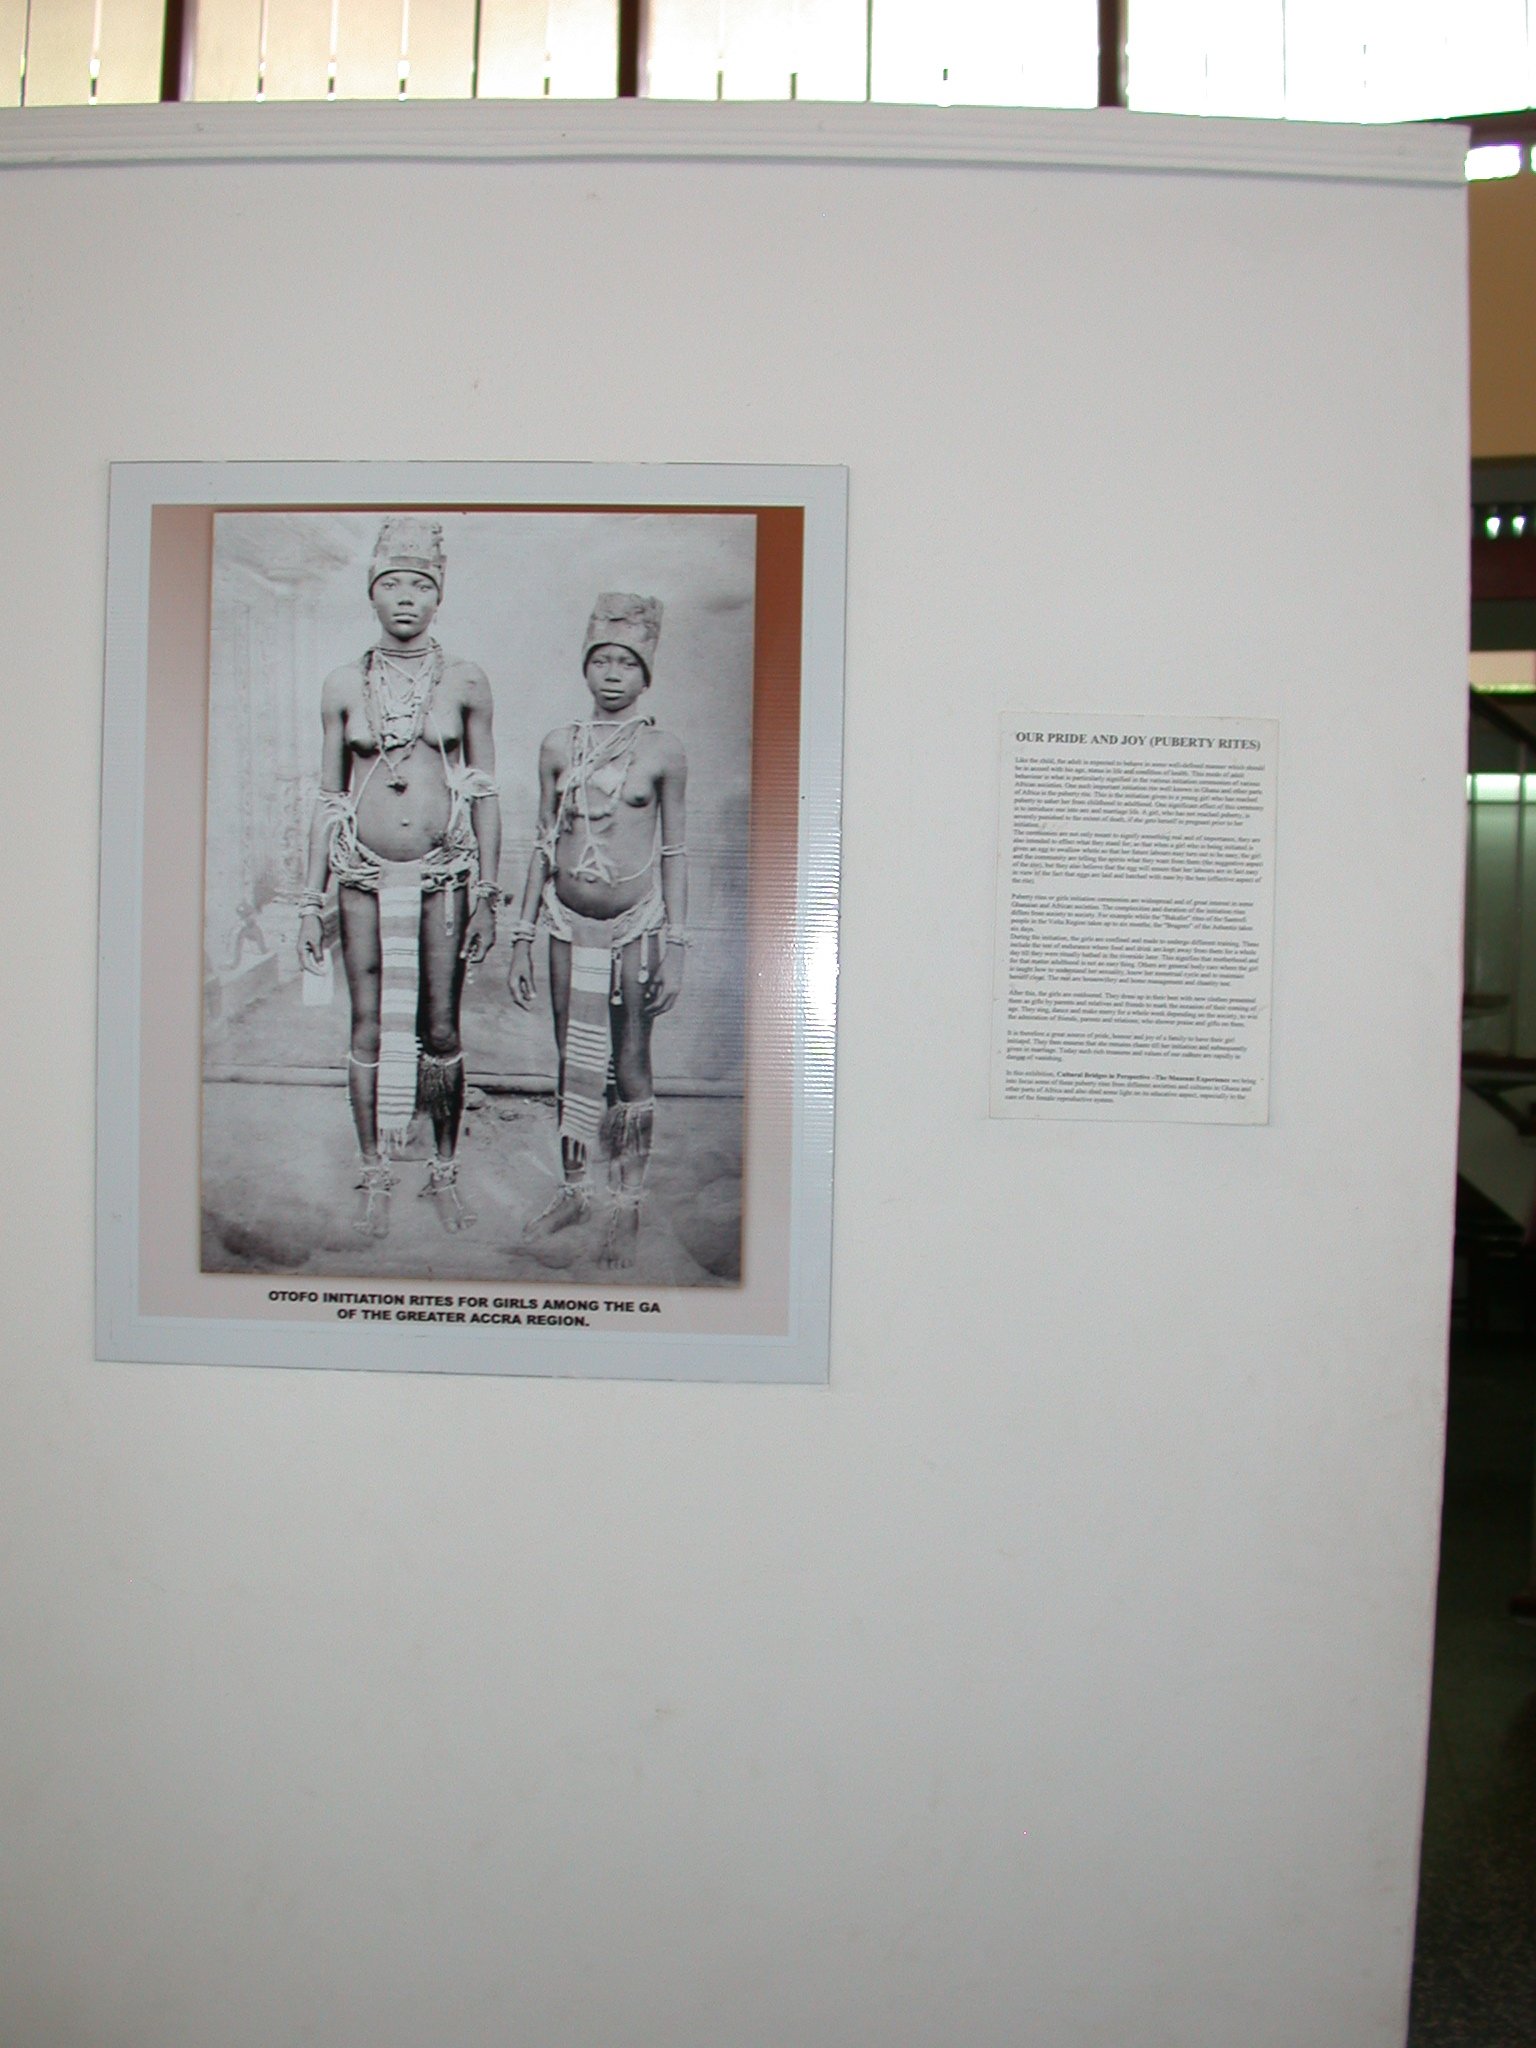 Picture of Otofo Initiation Rites for Girls Among the Ga, National Musem, Accra, Ghana